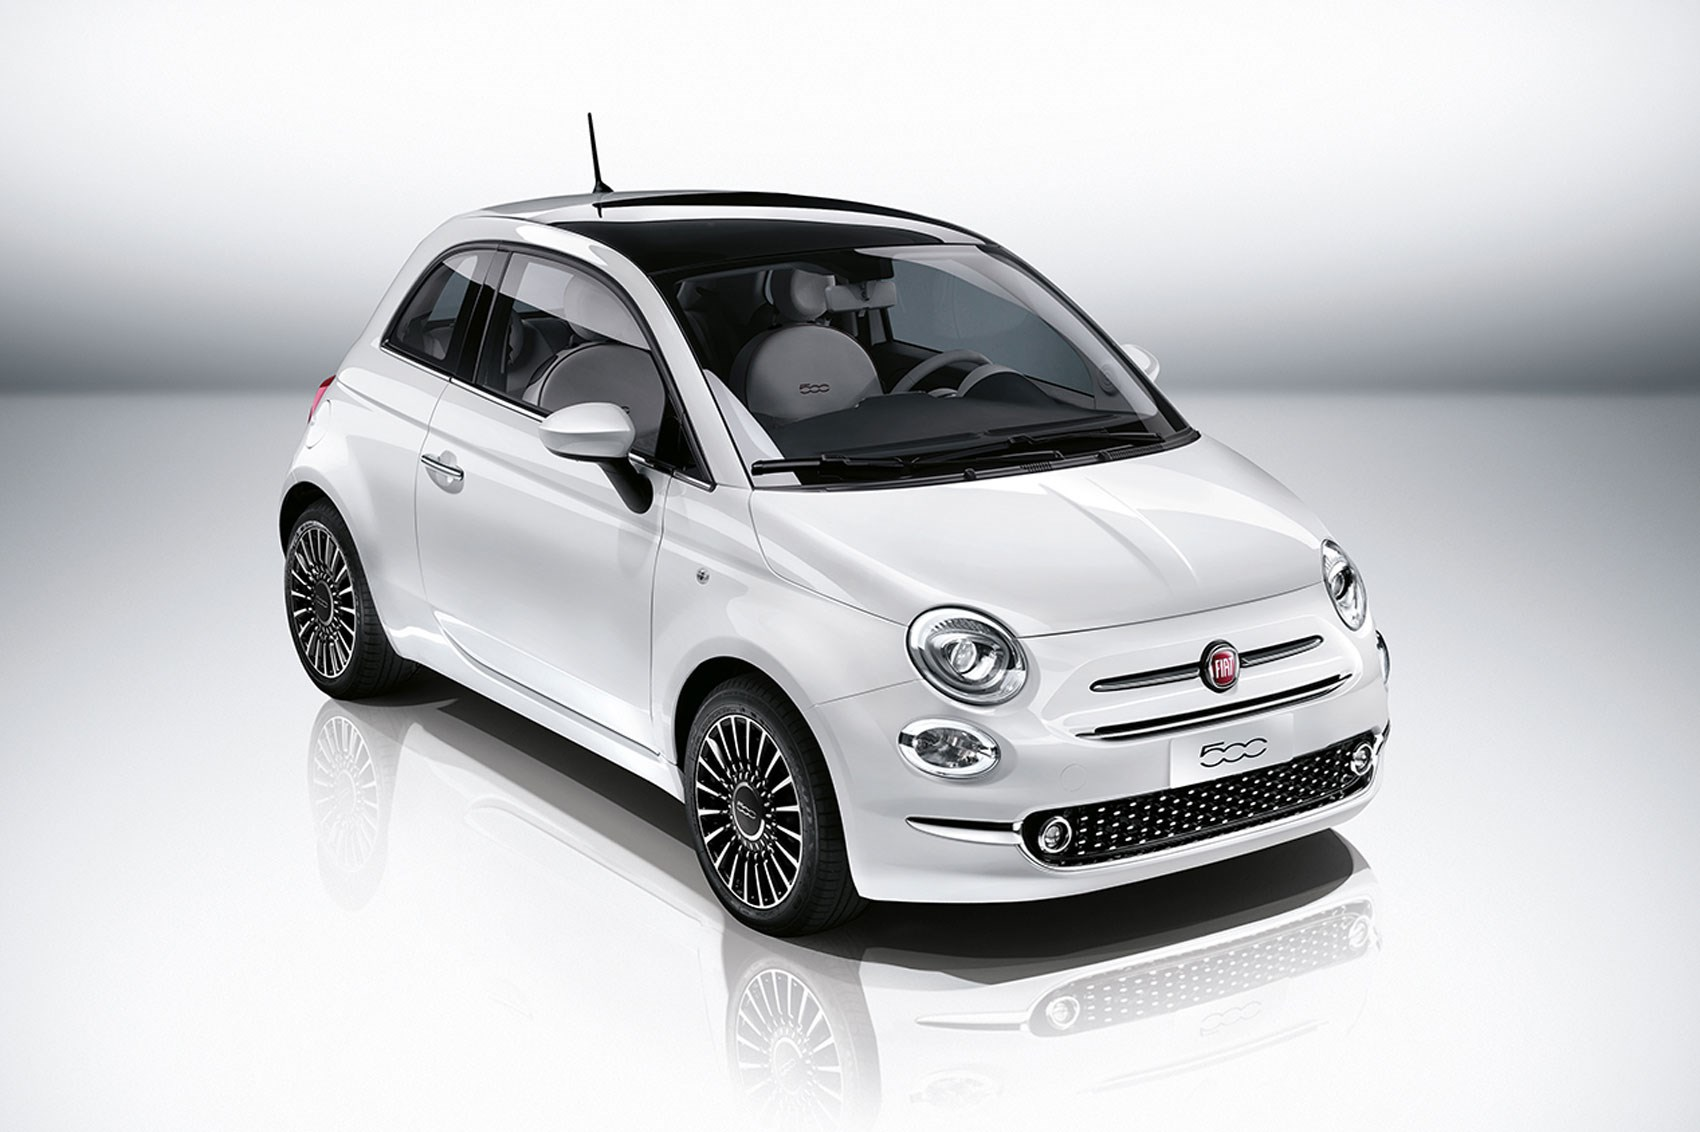 fiat 500 2016 facelift revealed first official pics of 500 s new look by car magazine. Black Bedroom Furniture Sets. Home Design Ideas